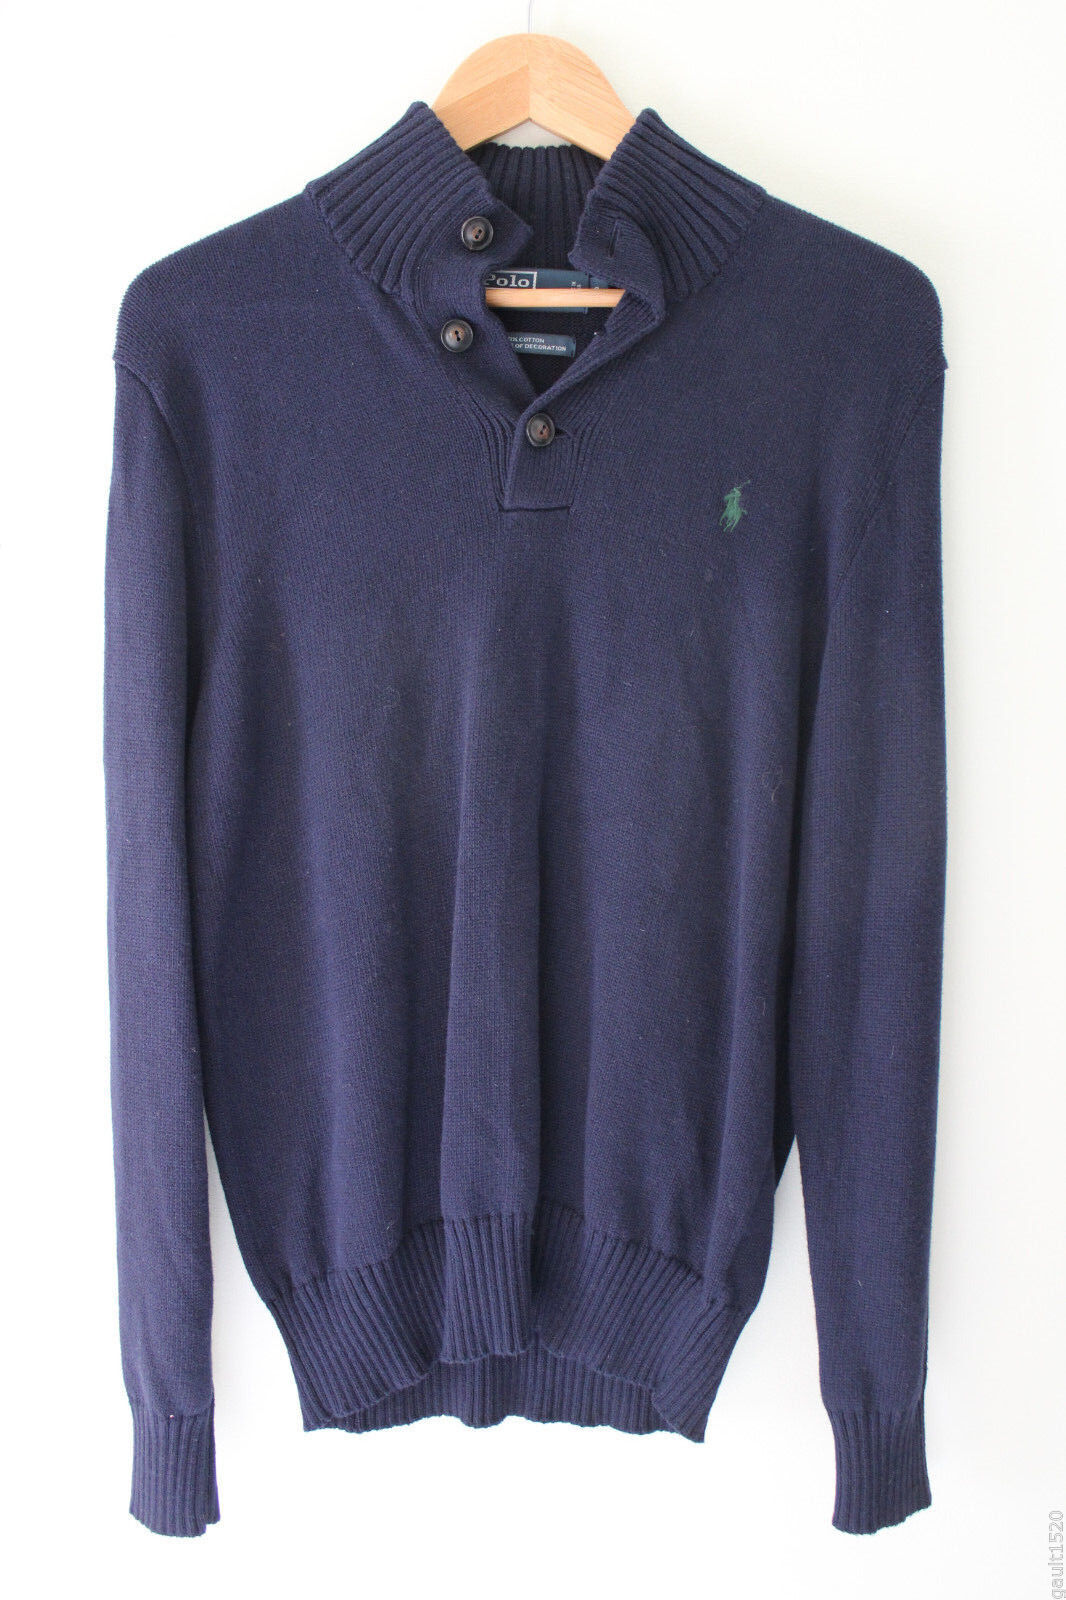 NWT Polo by Ralph Lauren Navy Blau Classics Pull Over Fine Cotton Sweater S 125